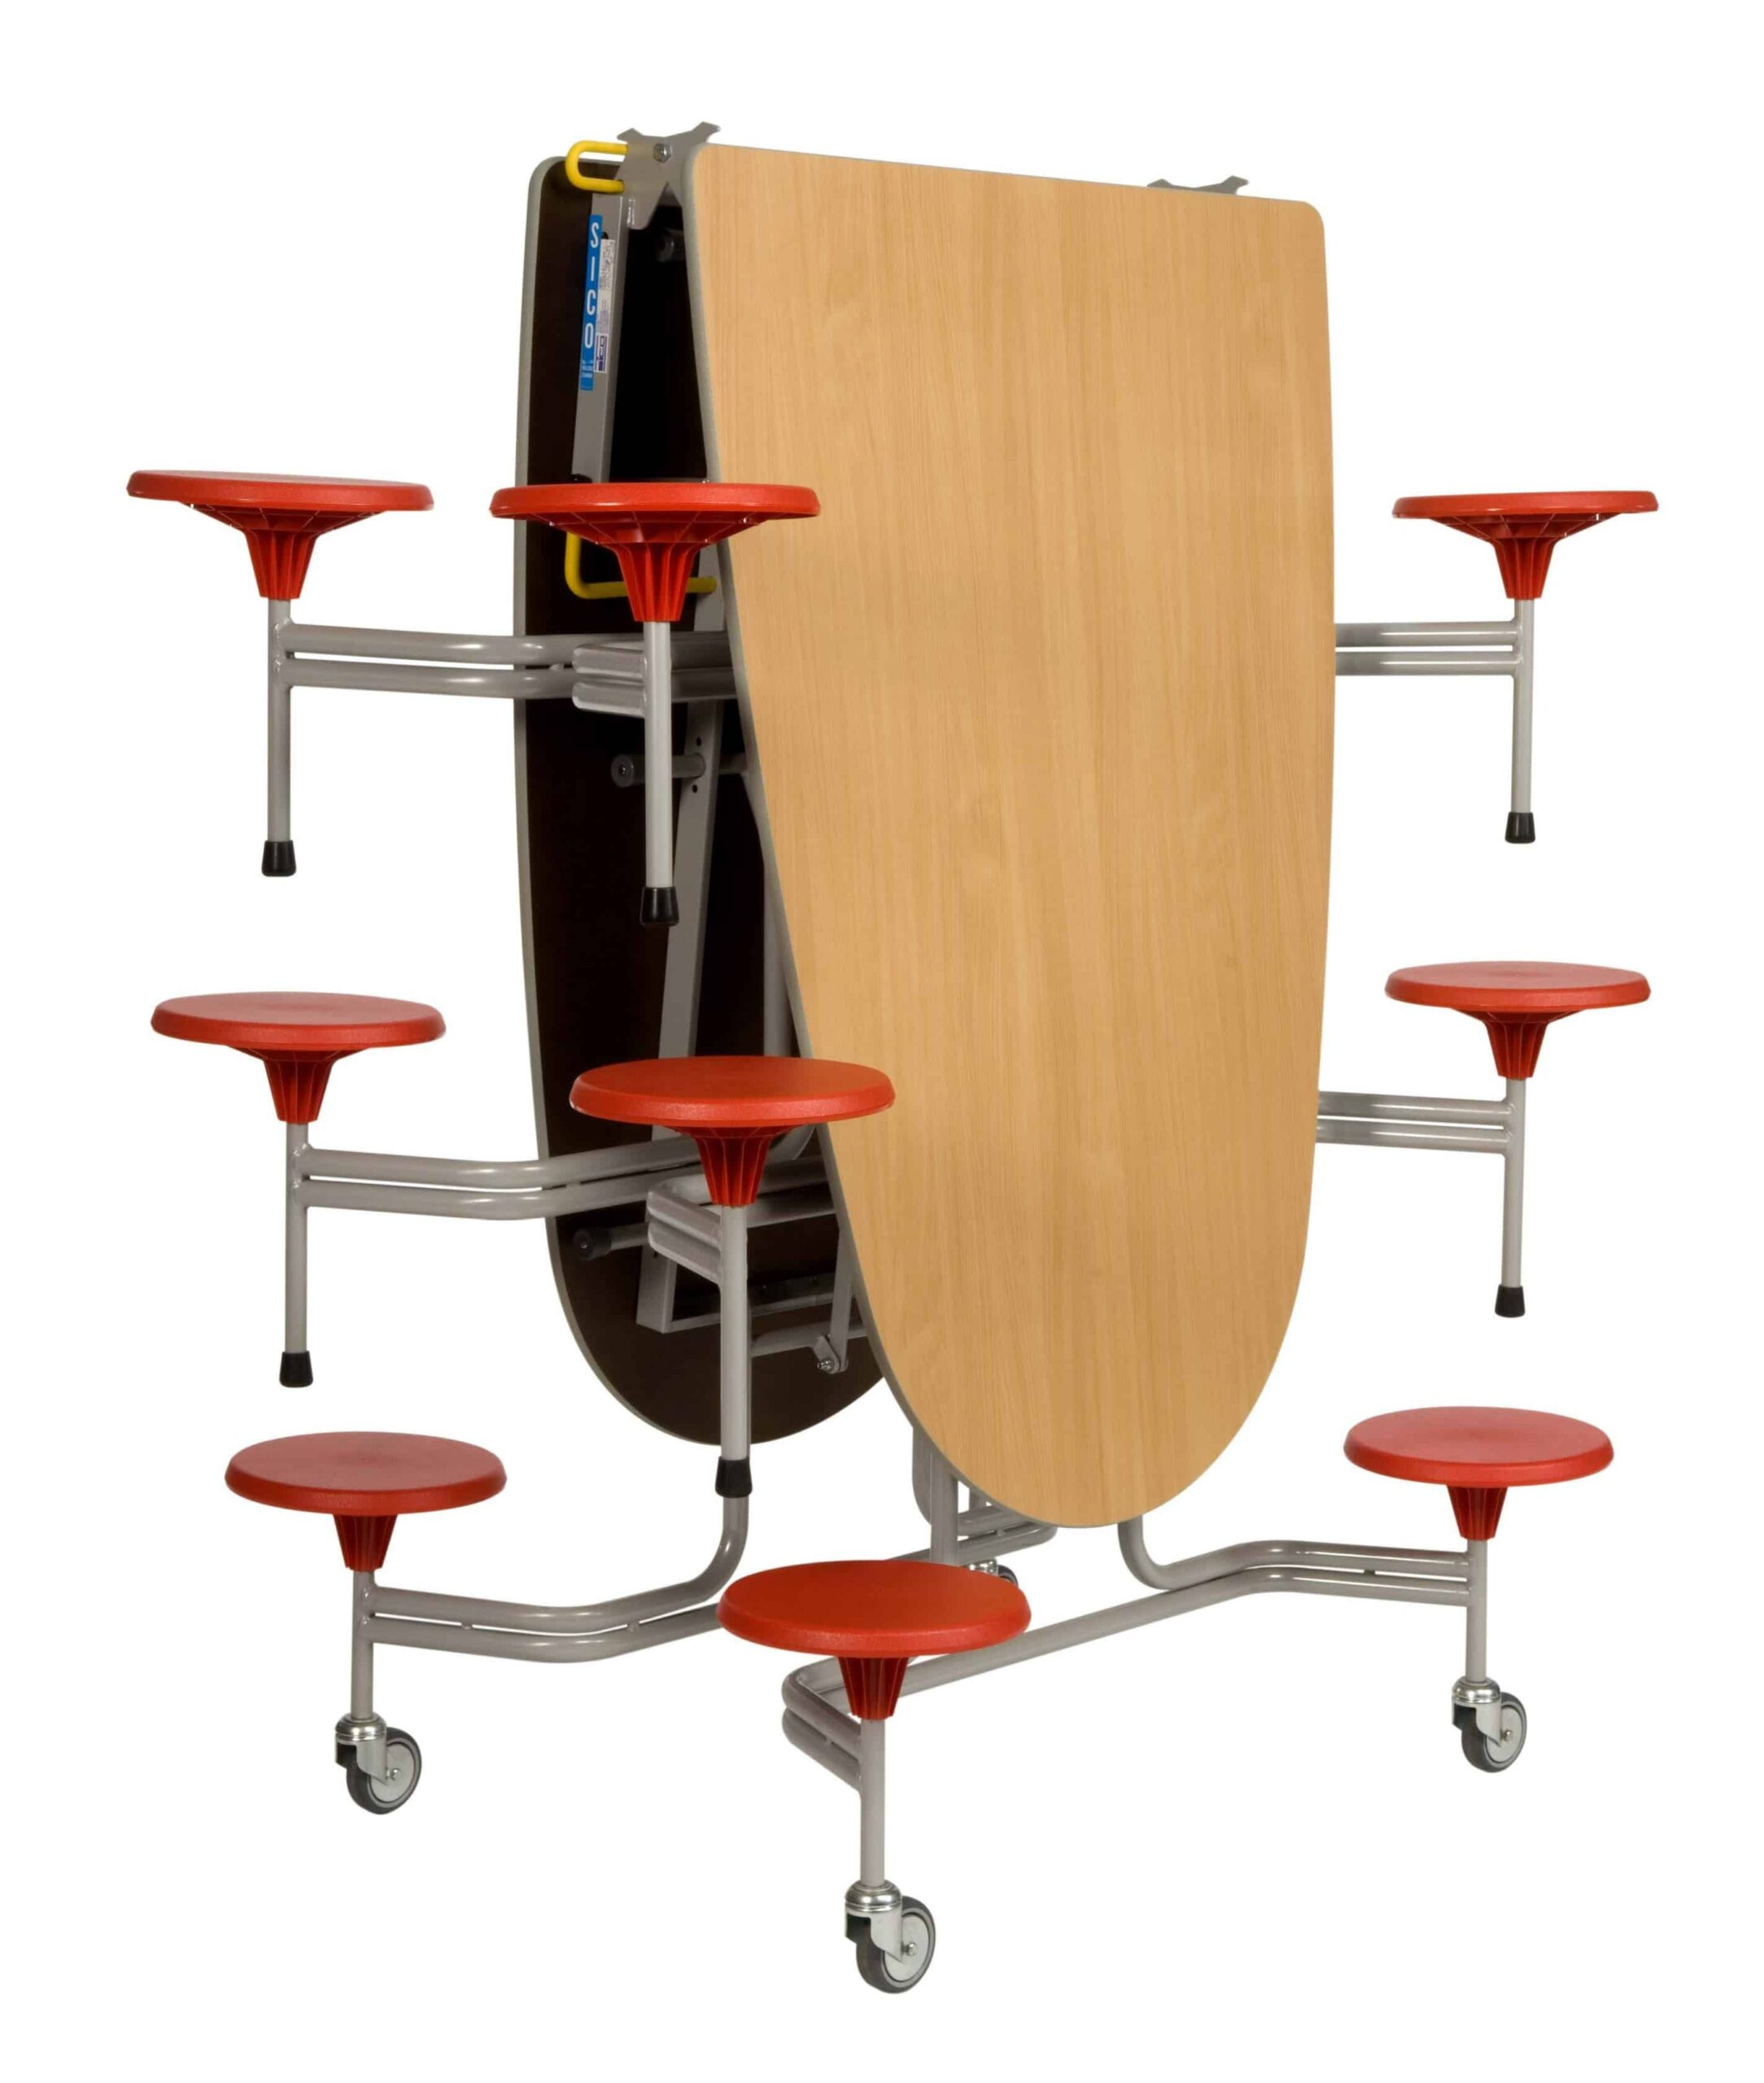 Mesa Plegable con asientos COMUNICATOR